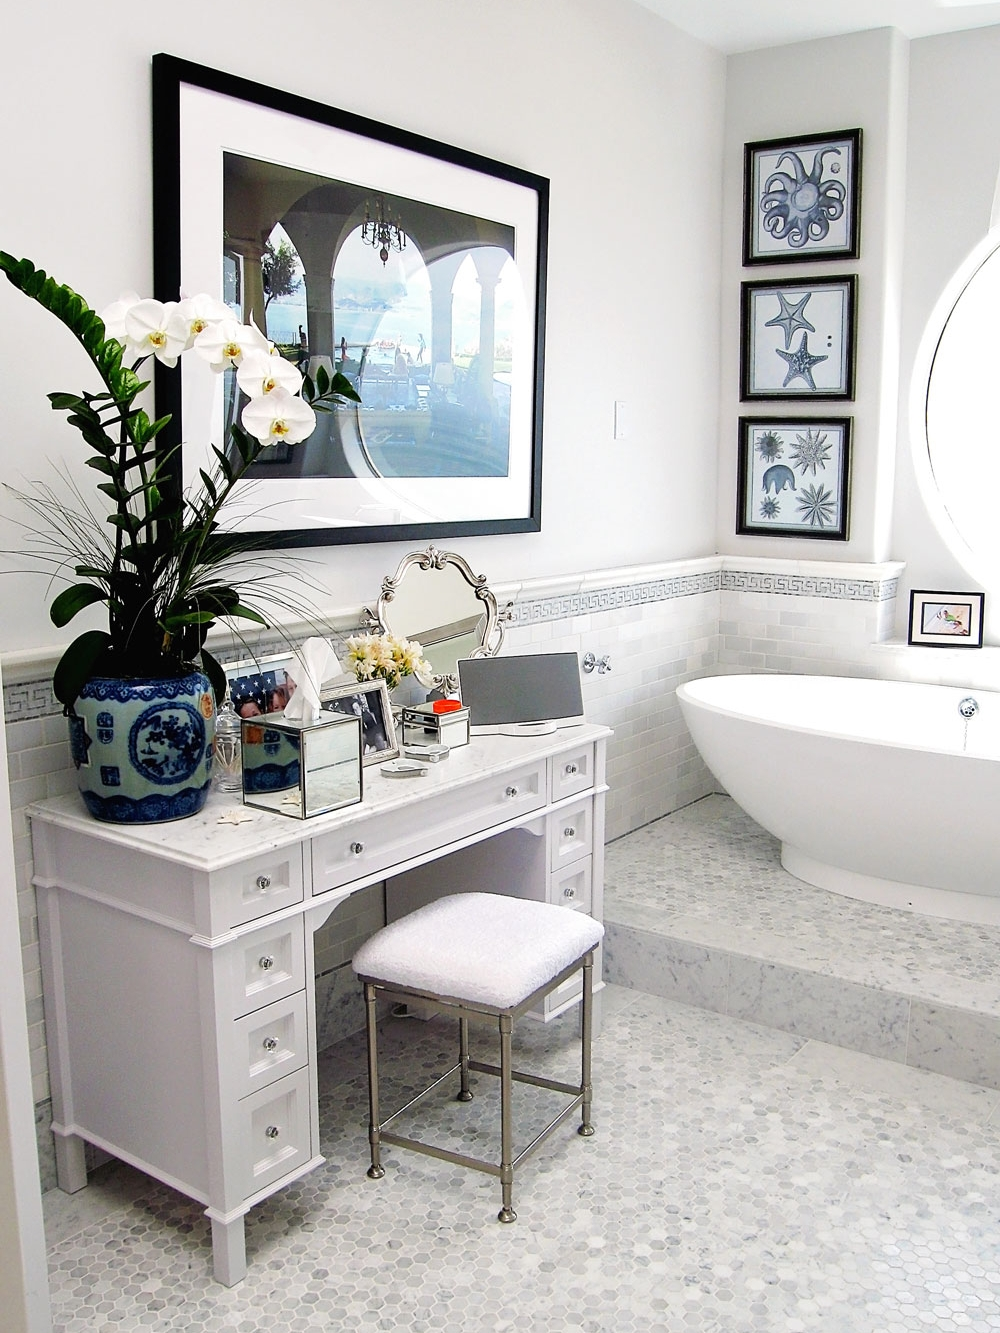 3-vanity-bathroom-tiled-floor-bathtub-dee-carawan.jpg